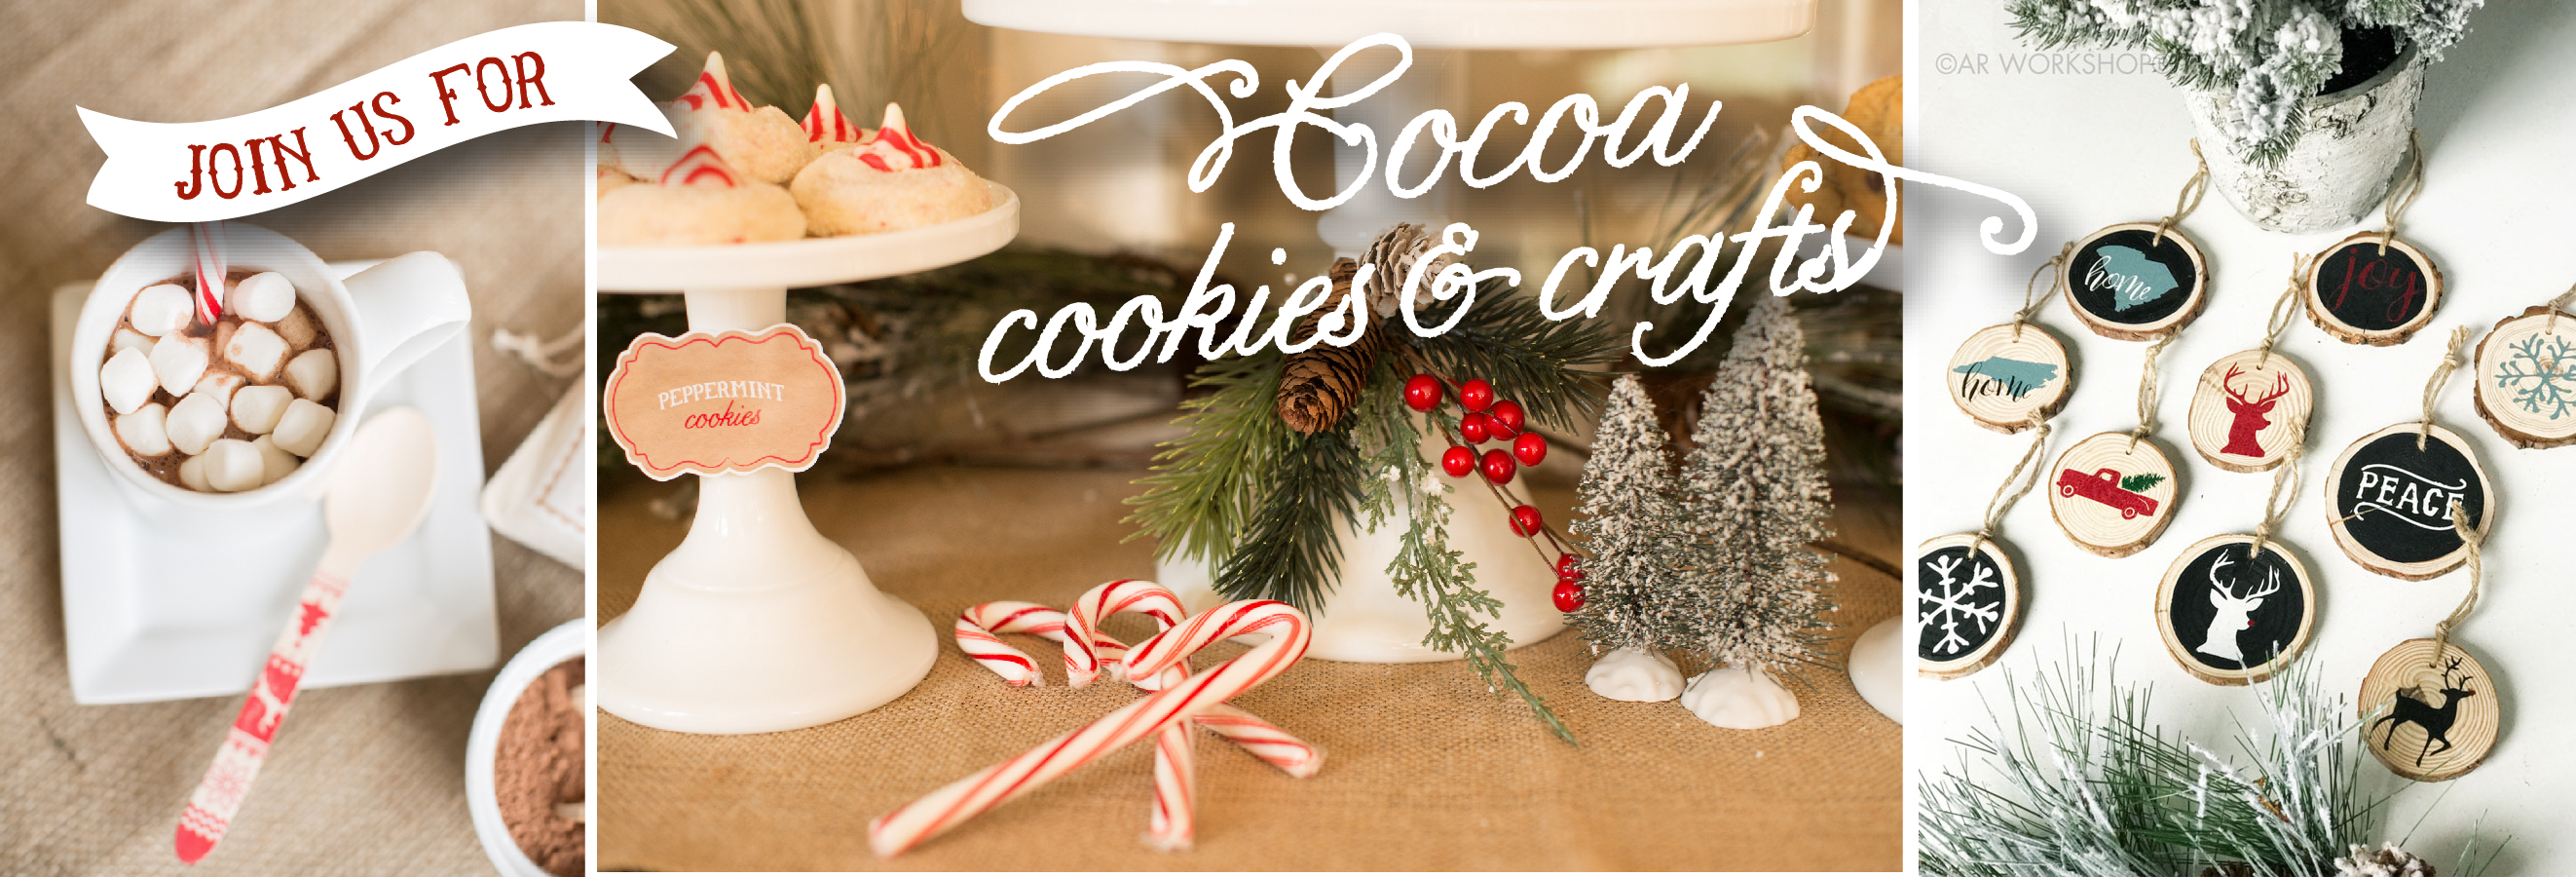 Things For Kids To Do In Charlotte Cocoa Cookies Crafts Diy Holiday Ornaments Session 3 Sold